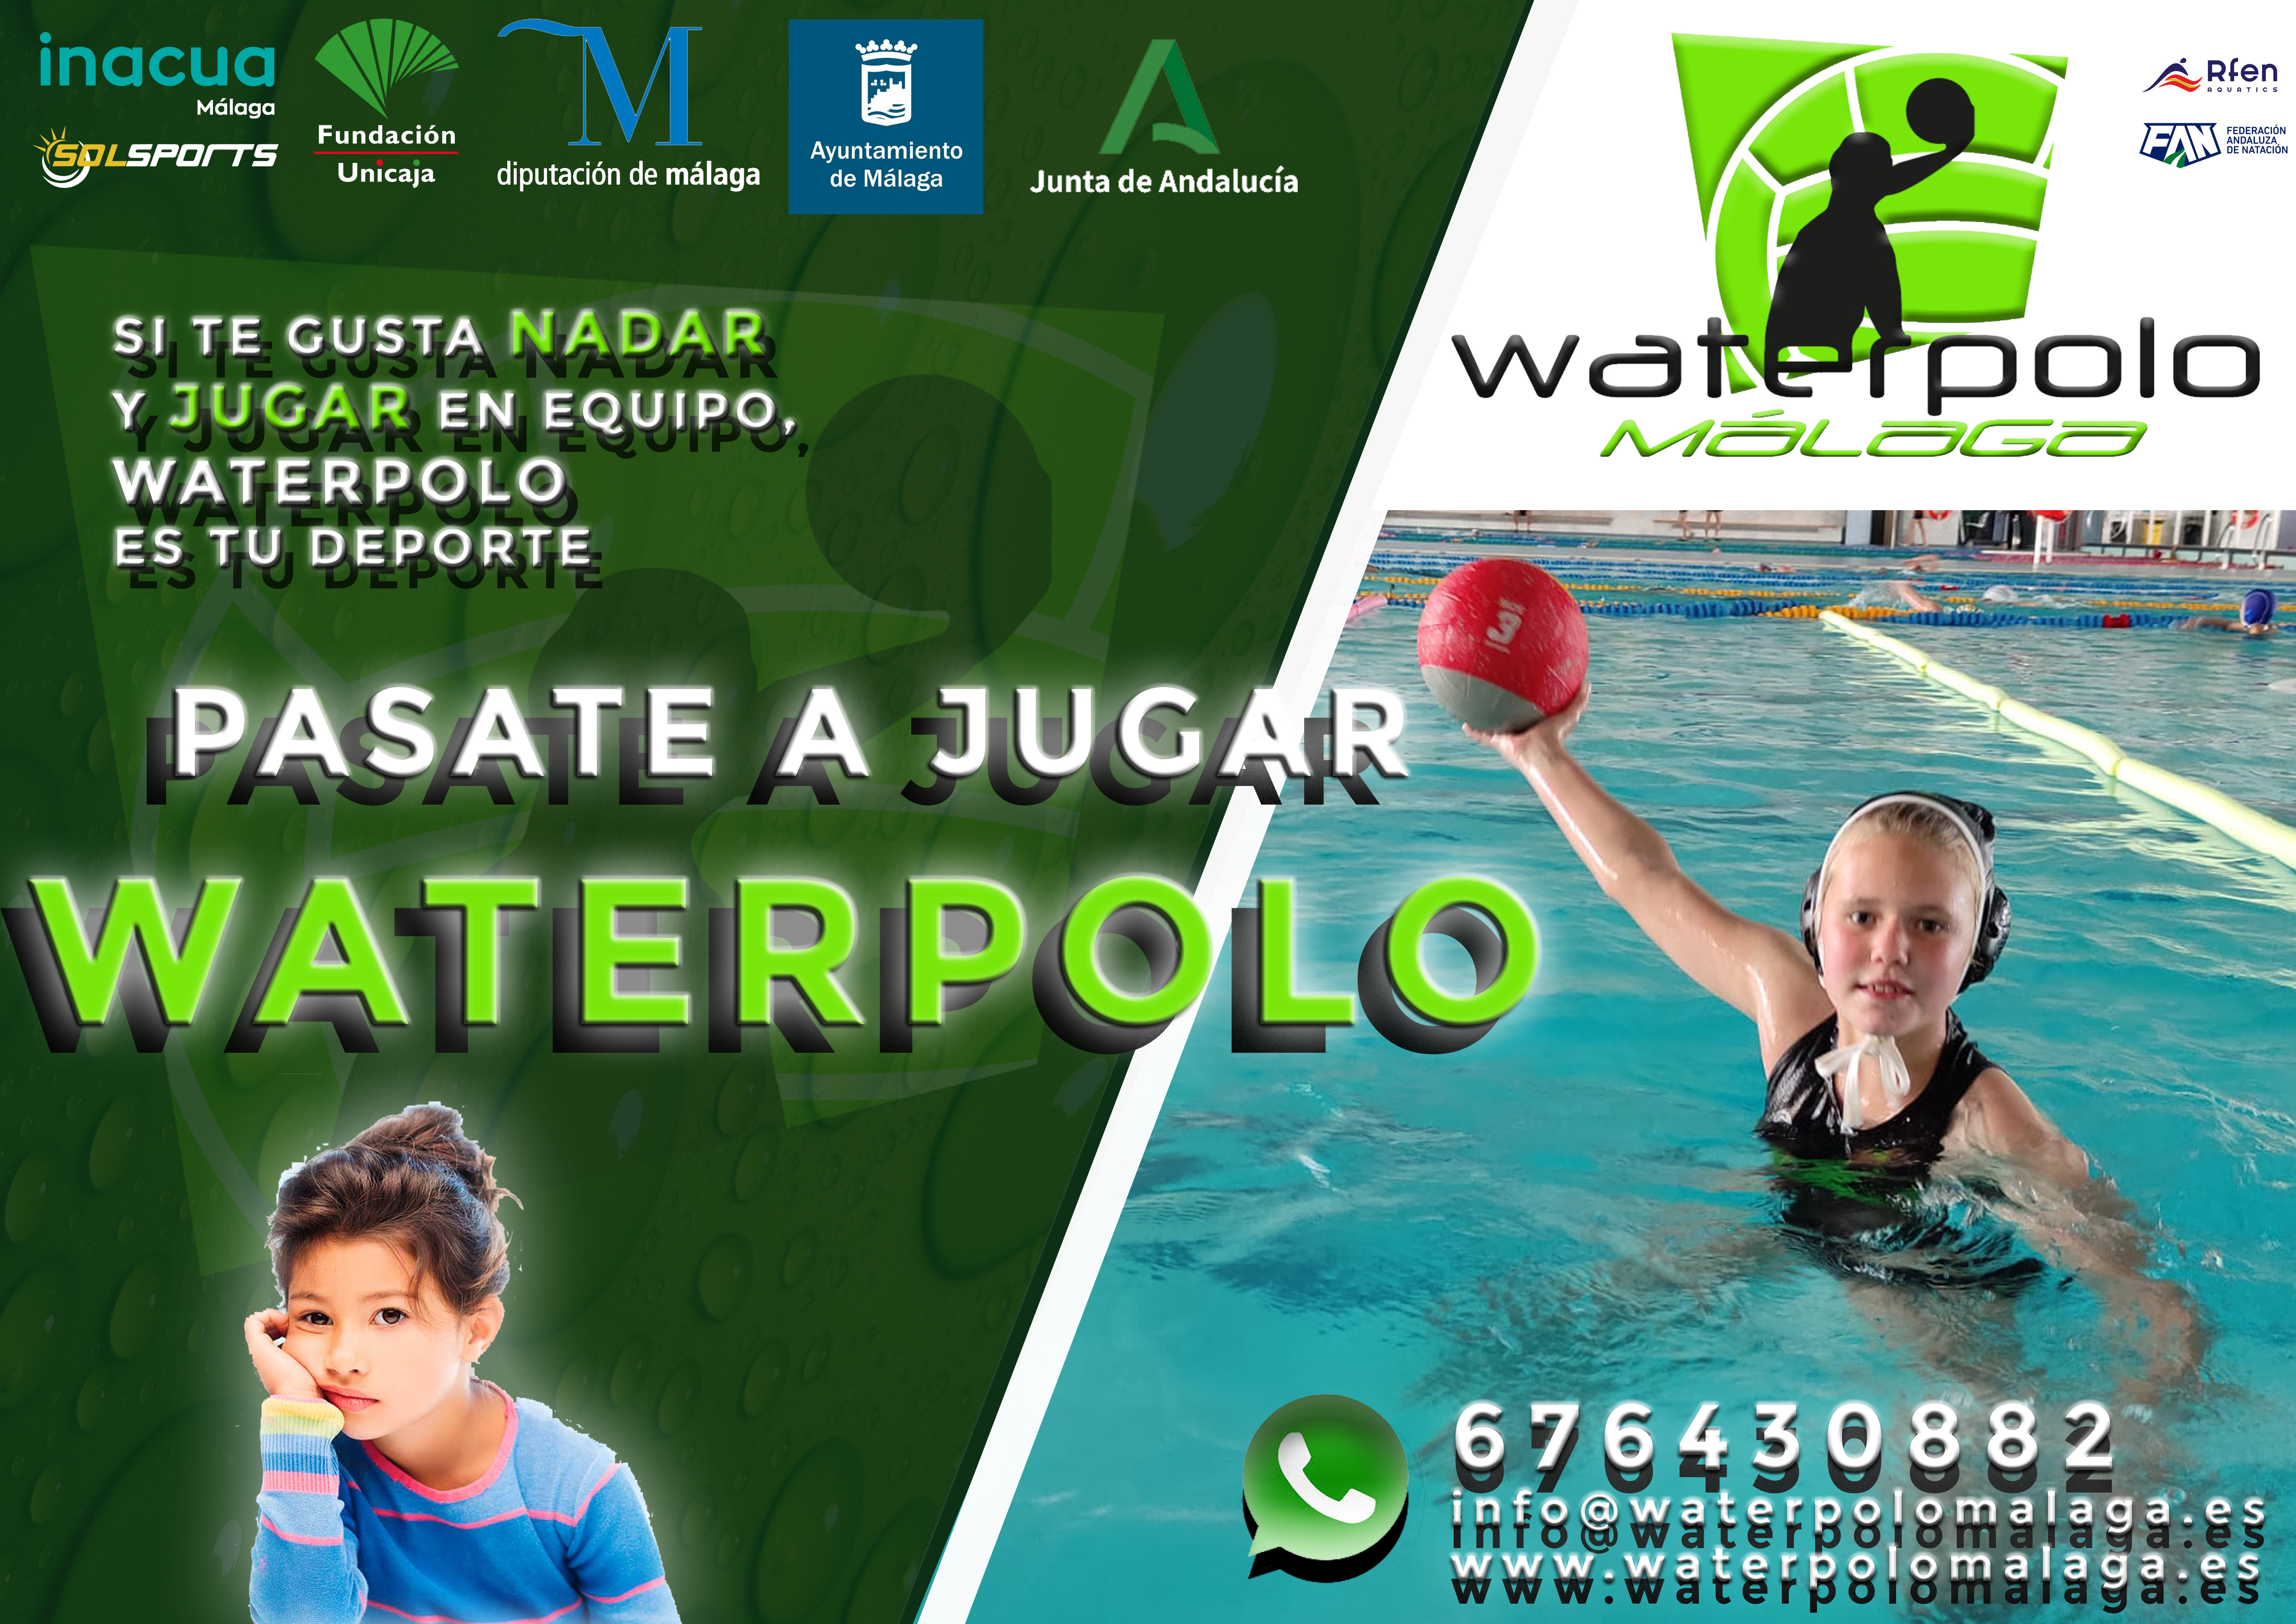 pastae mejor a jugar waterpolo - CHICA